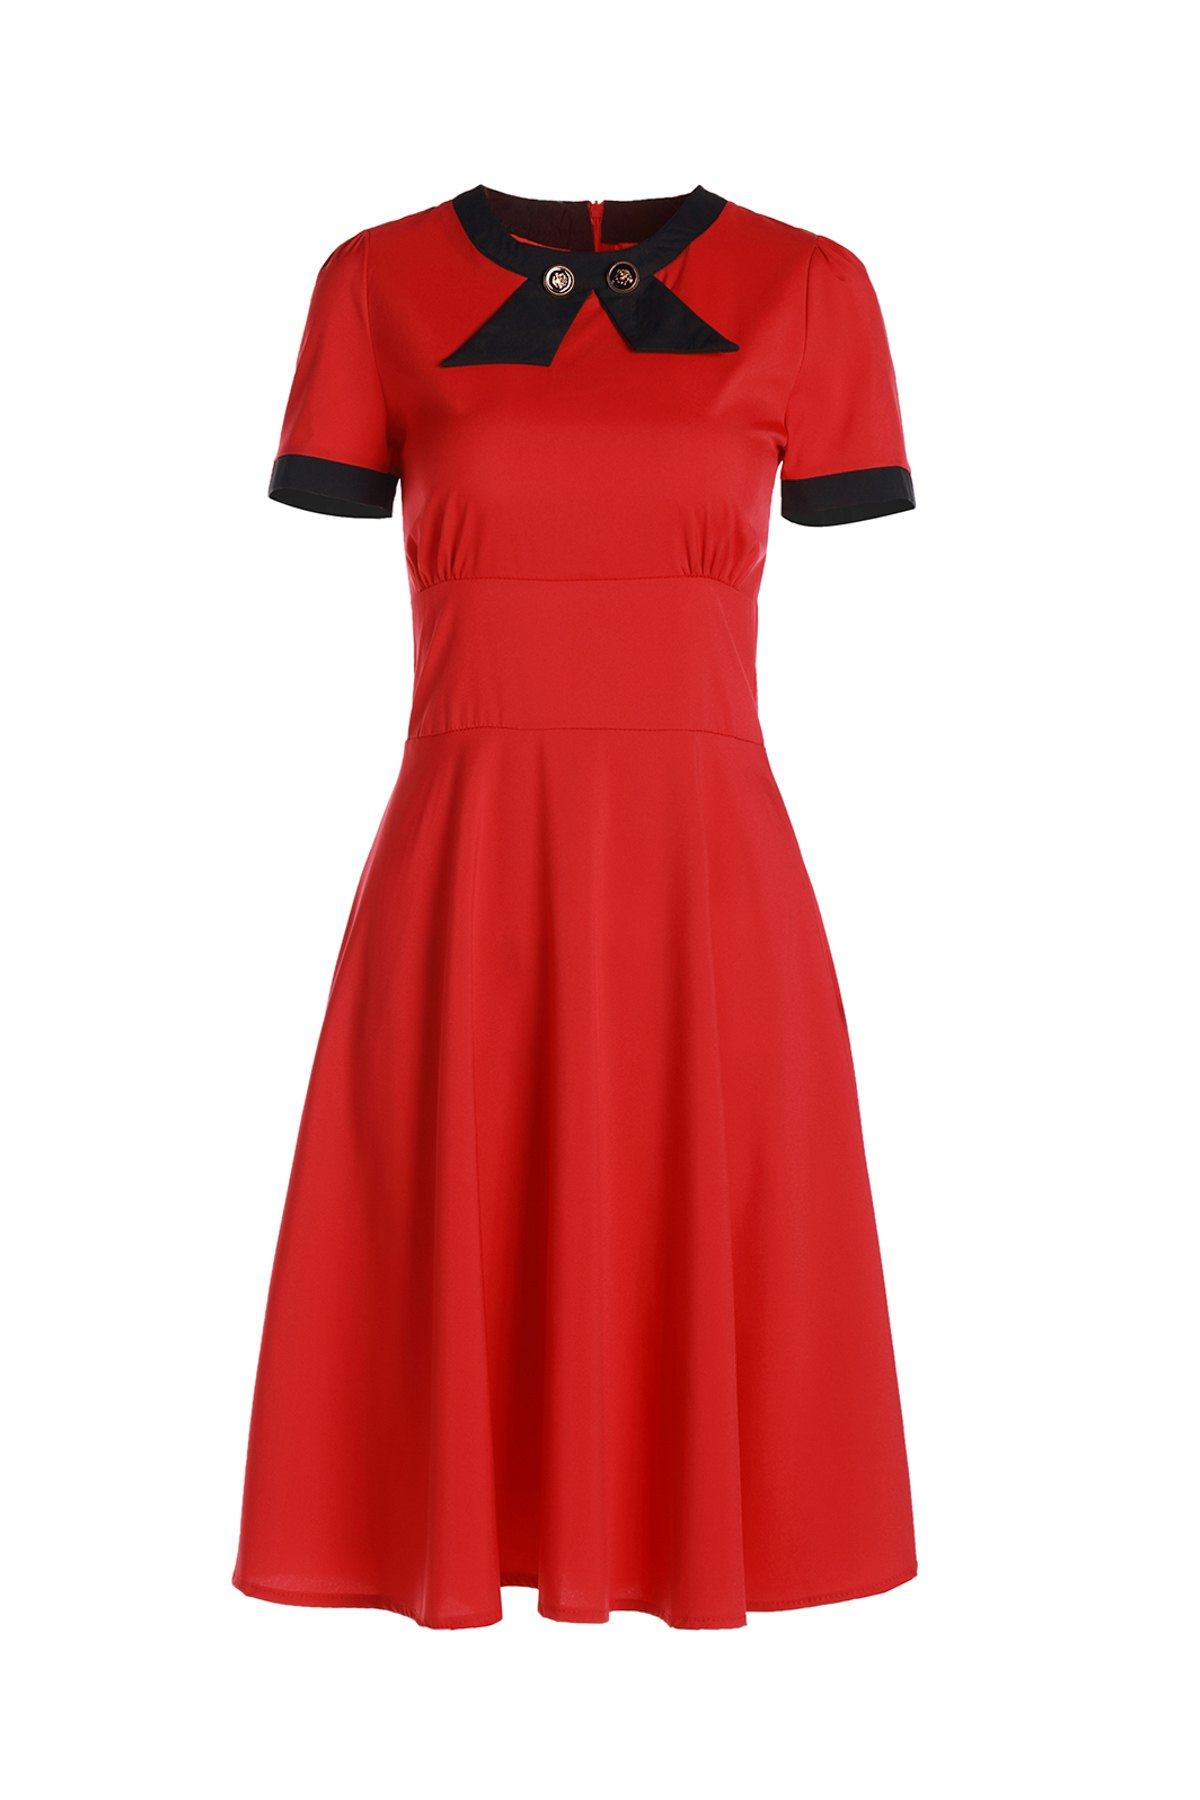 Vintage Short Sleeve Women's Round Neck Button Embellished Dress - RED M